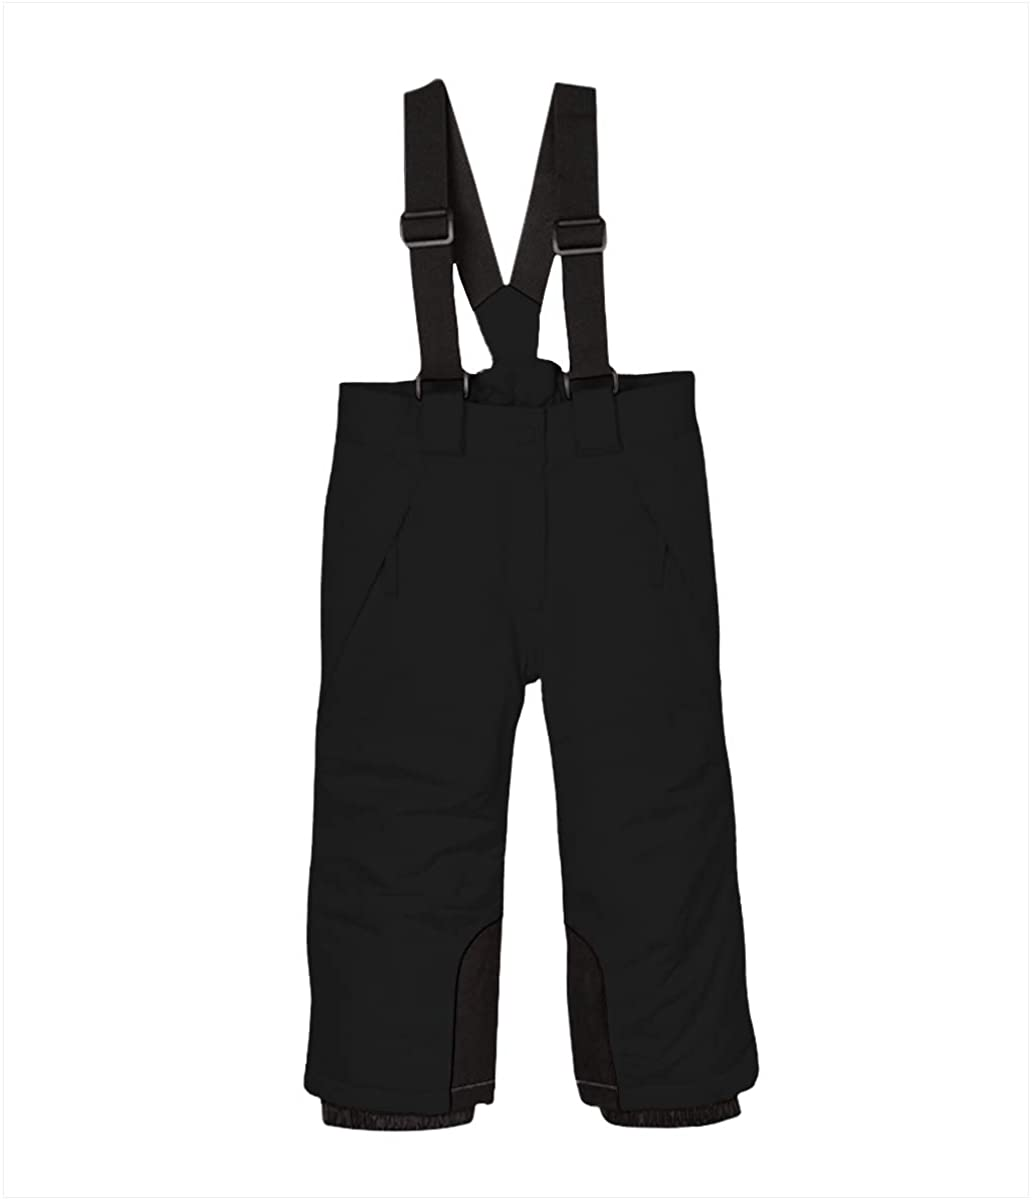 BiyAN9m Baby/Toddler Chest Insulated Snow Bib Overalls, Ski Pant with Suspenders Snowsuit